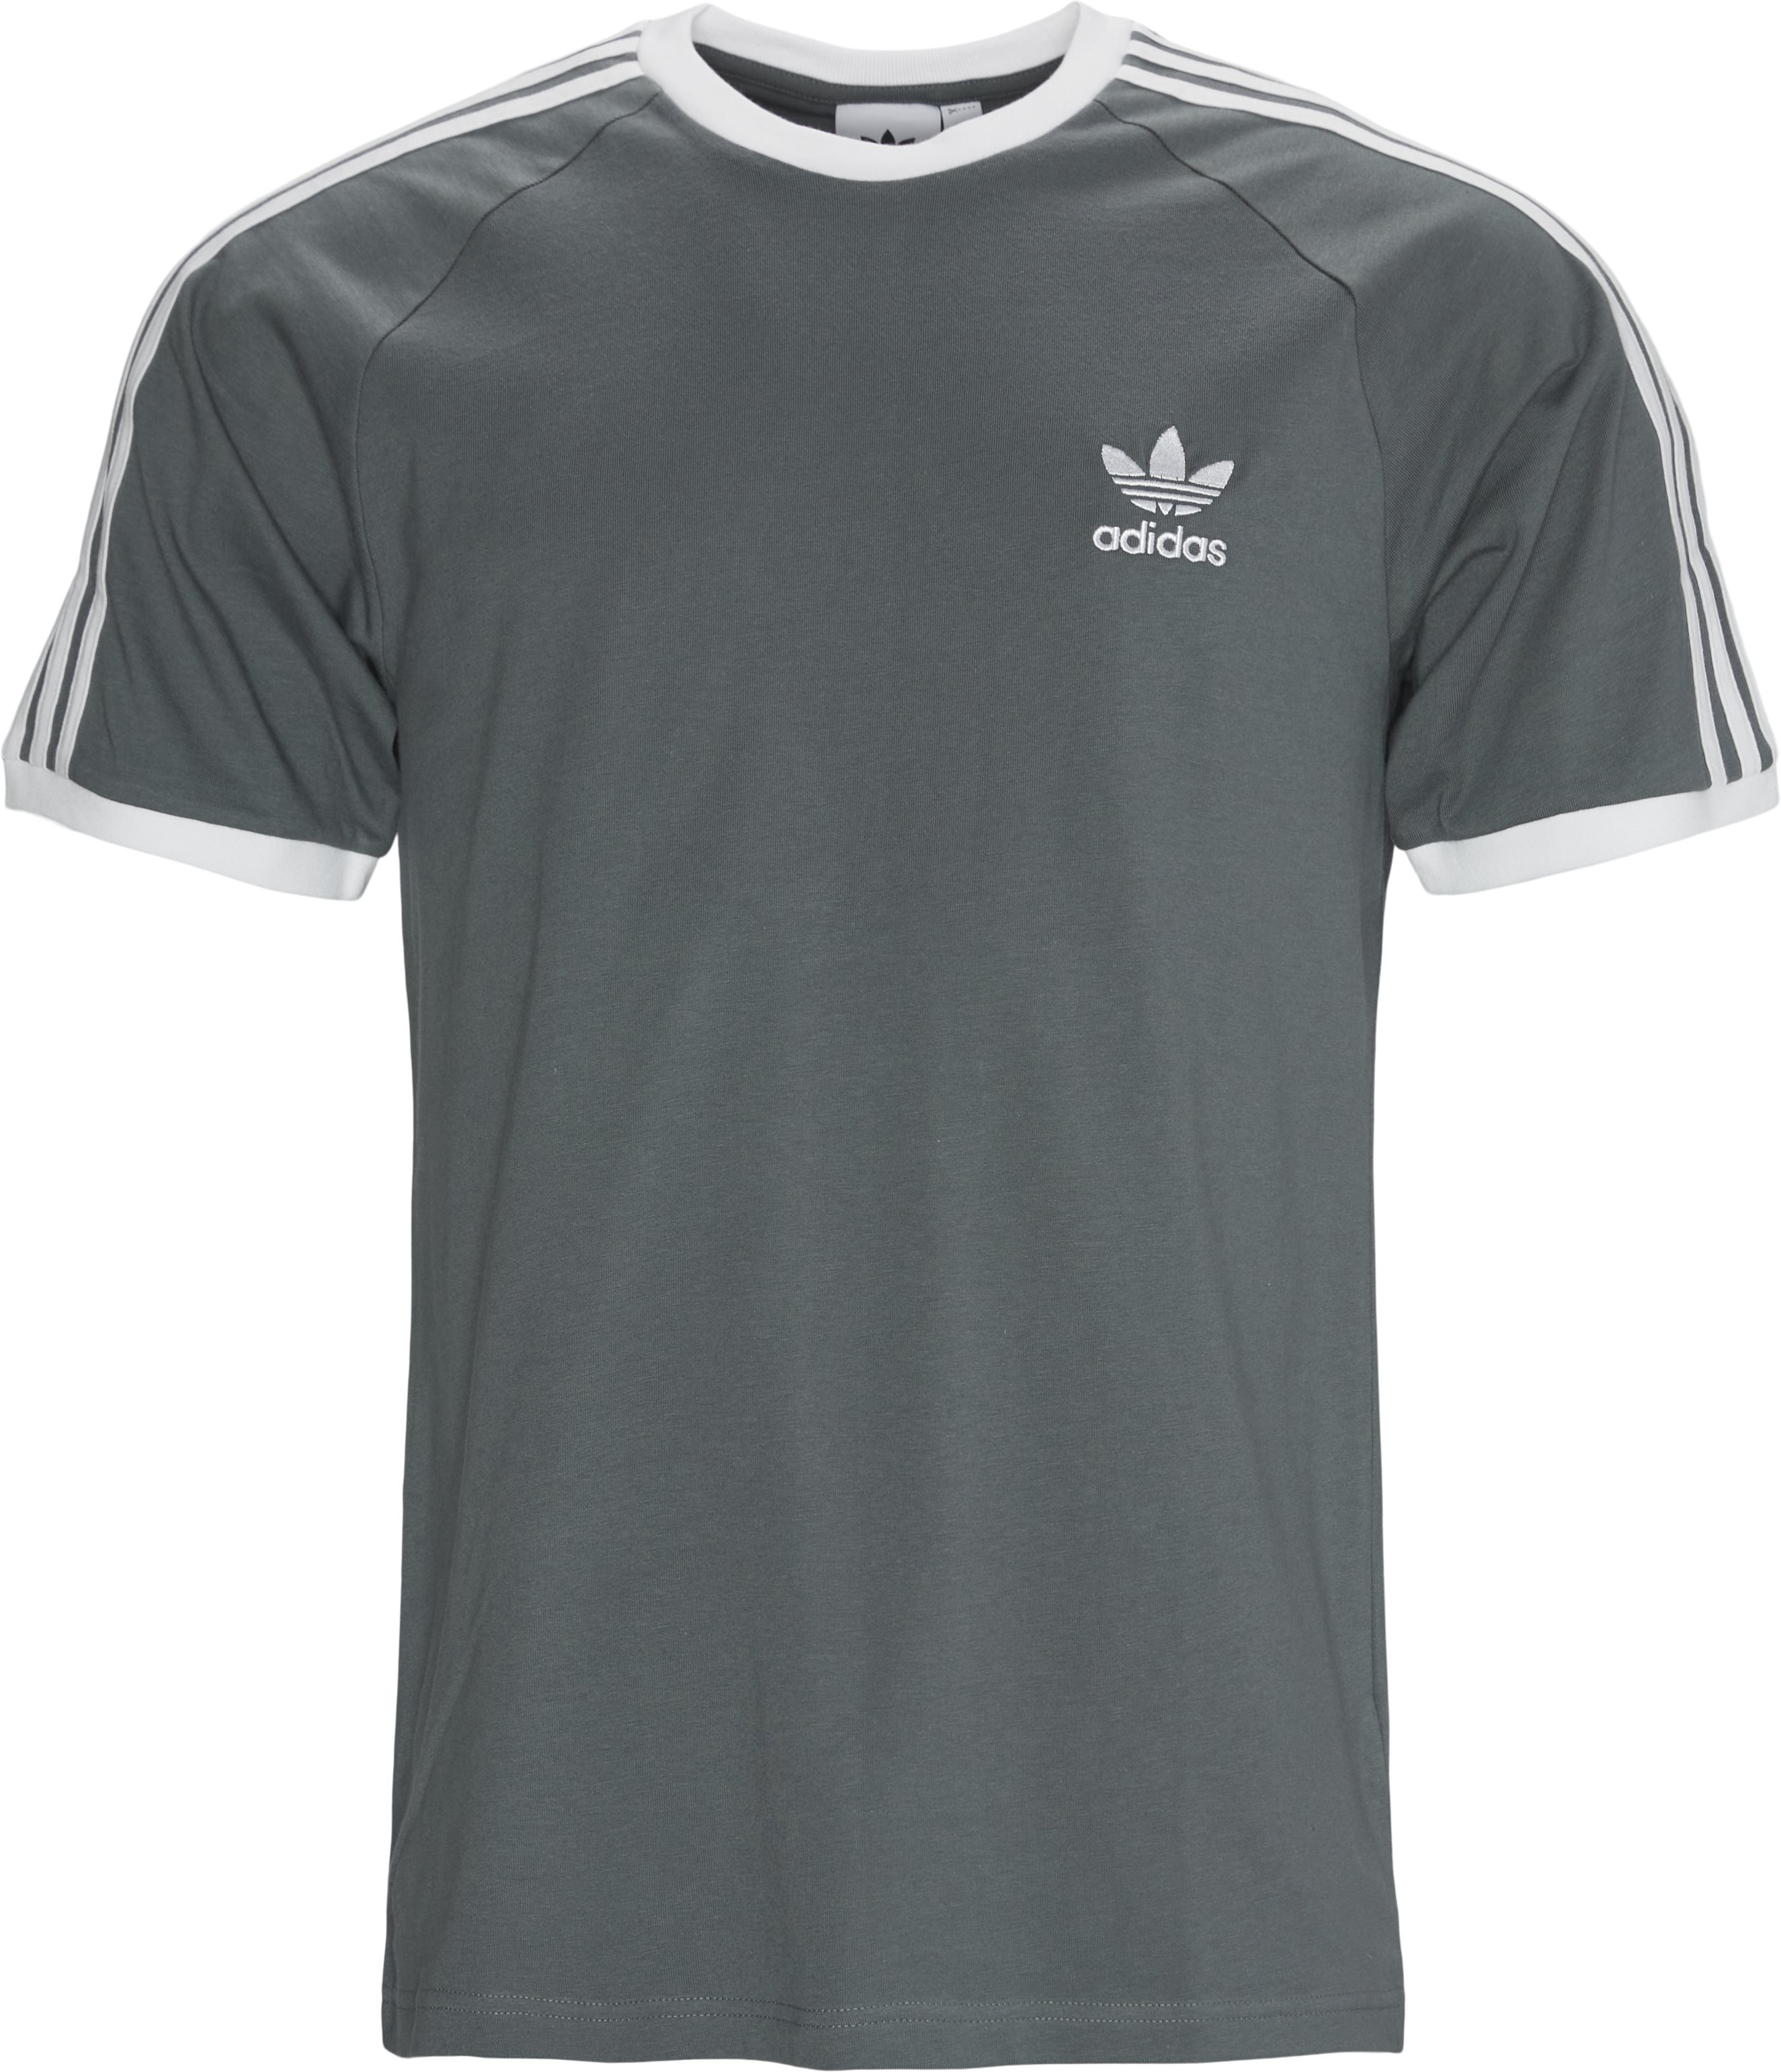 3 Stripes Tee - T-shirts - Regular - Grå